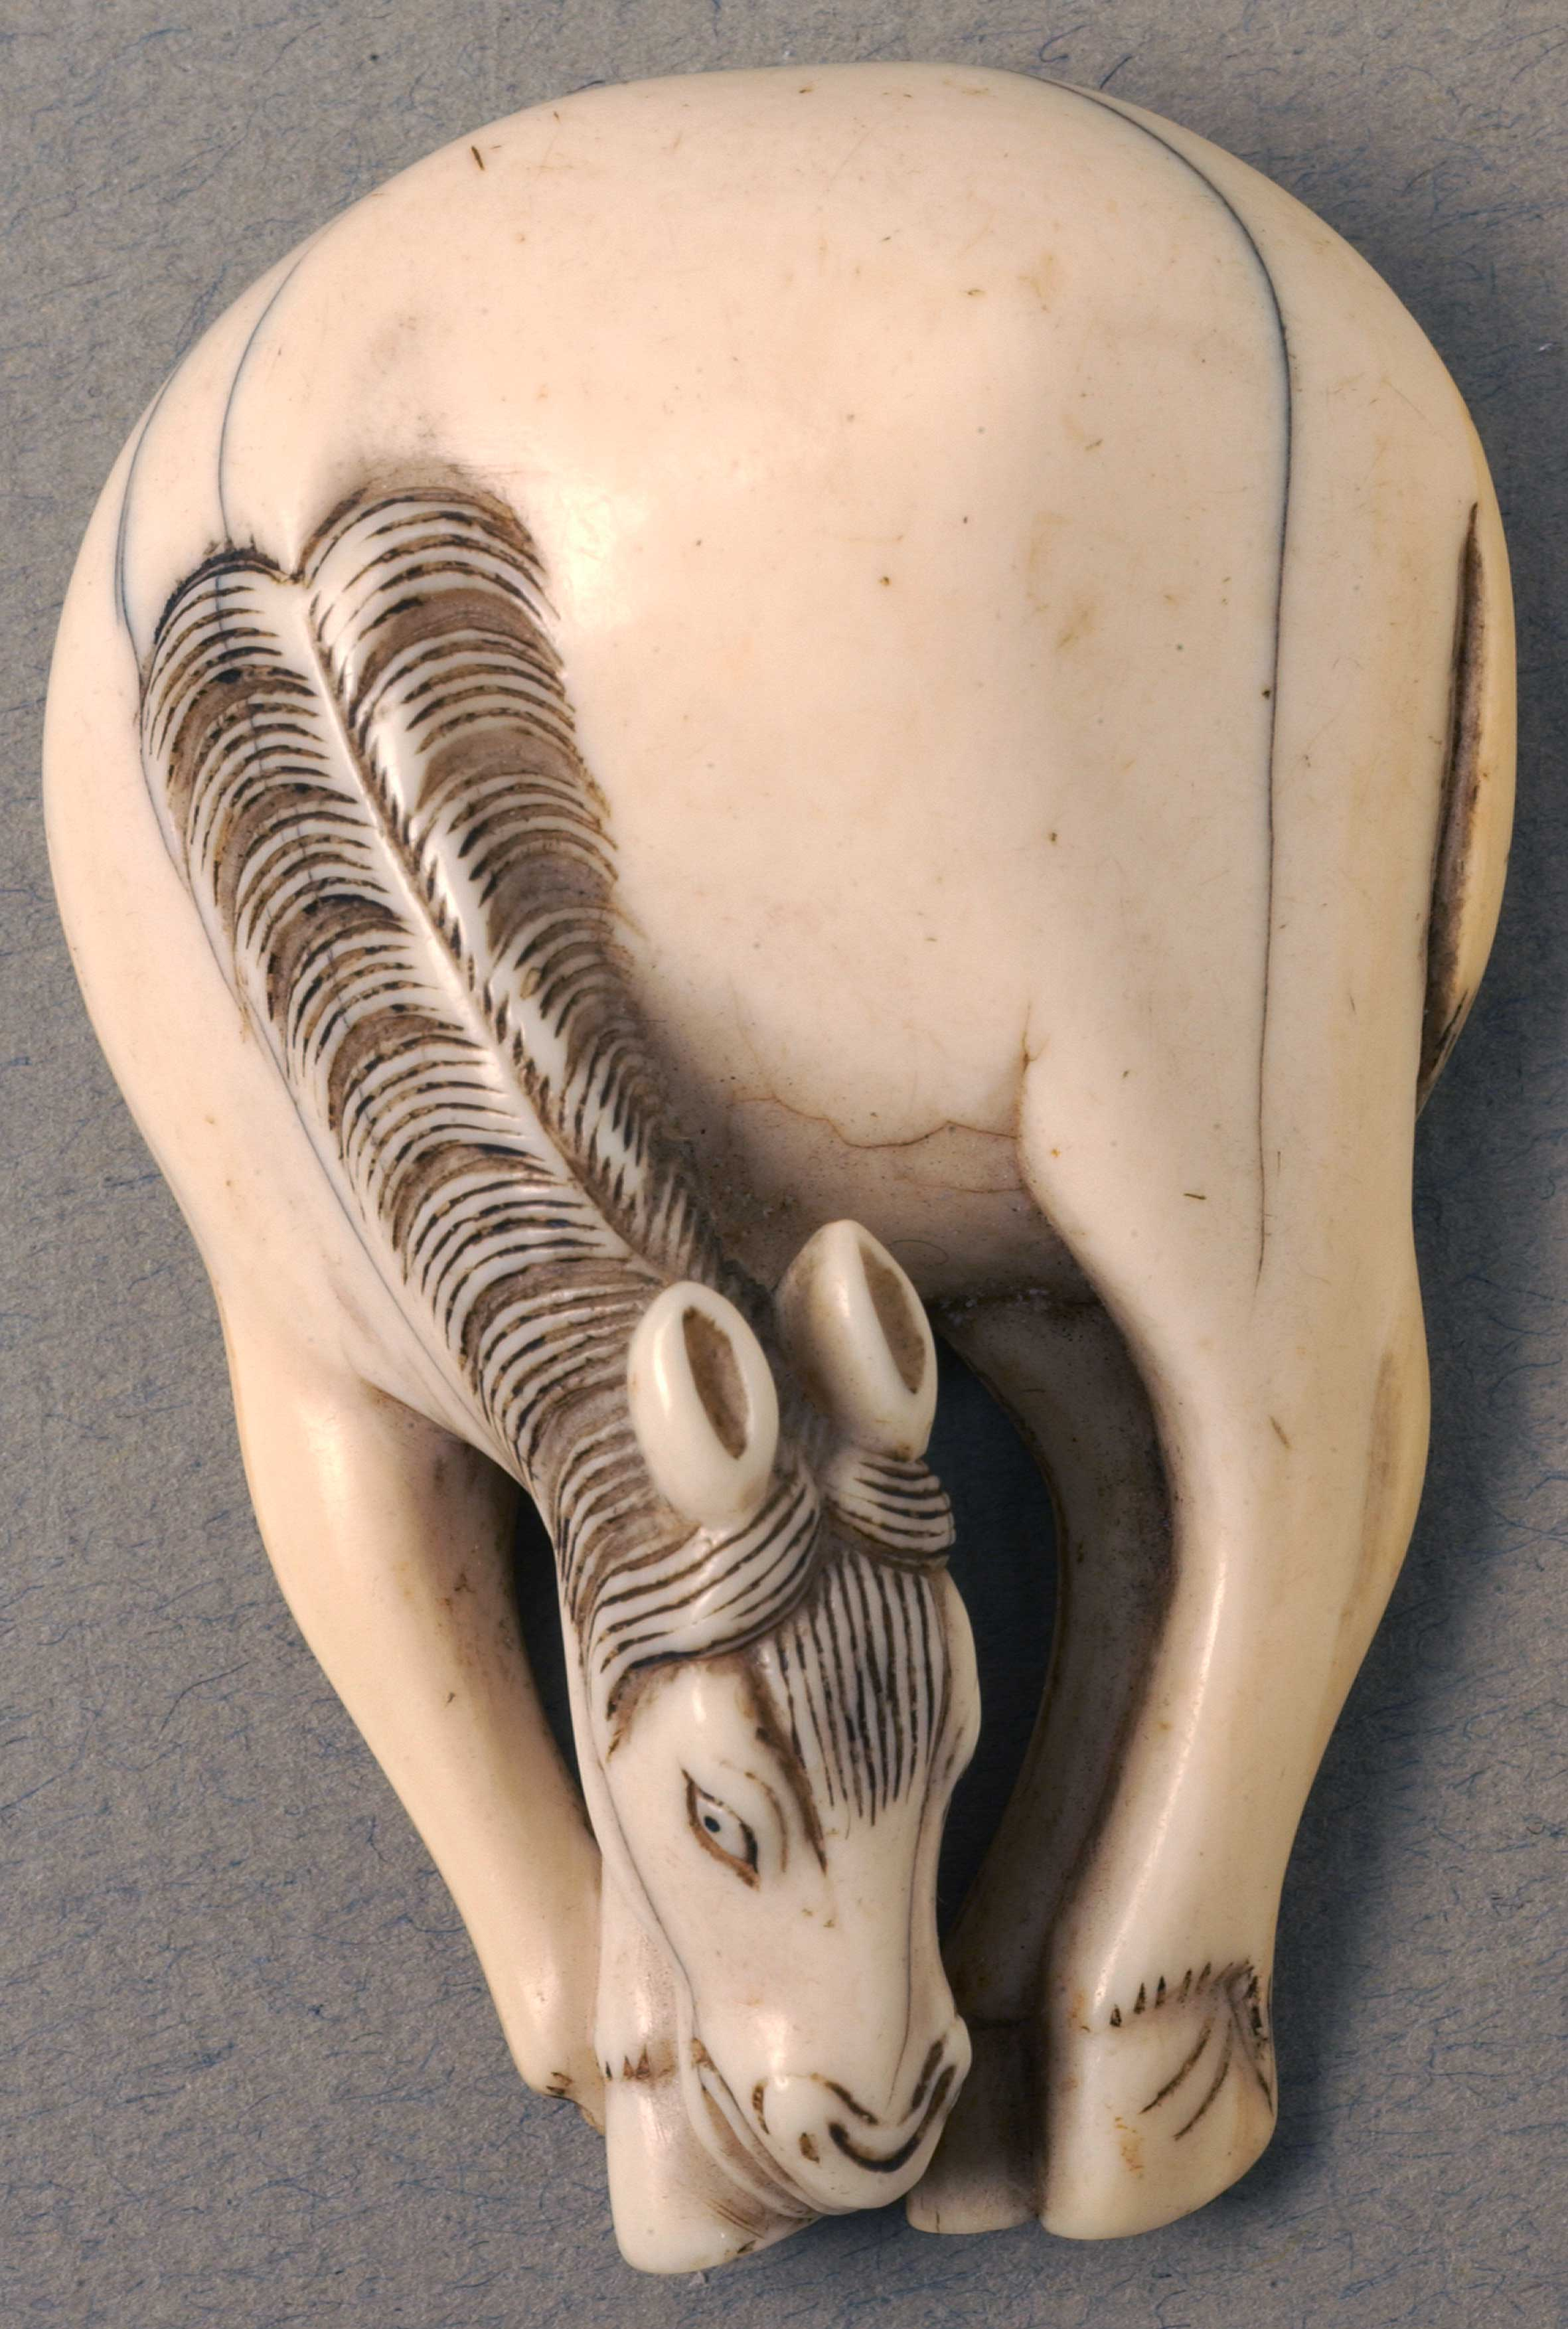 Netsuke depicting a Grazing horse